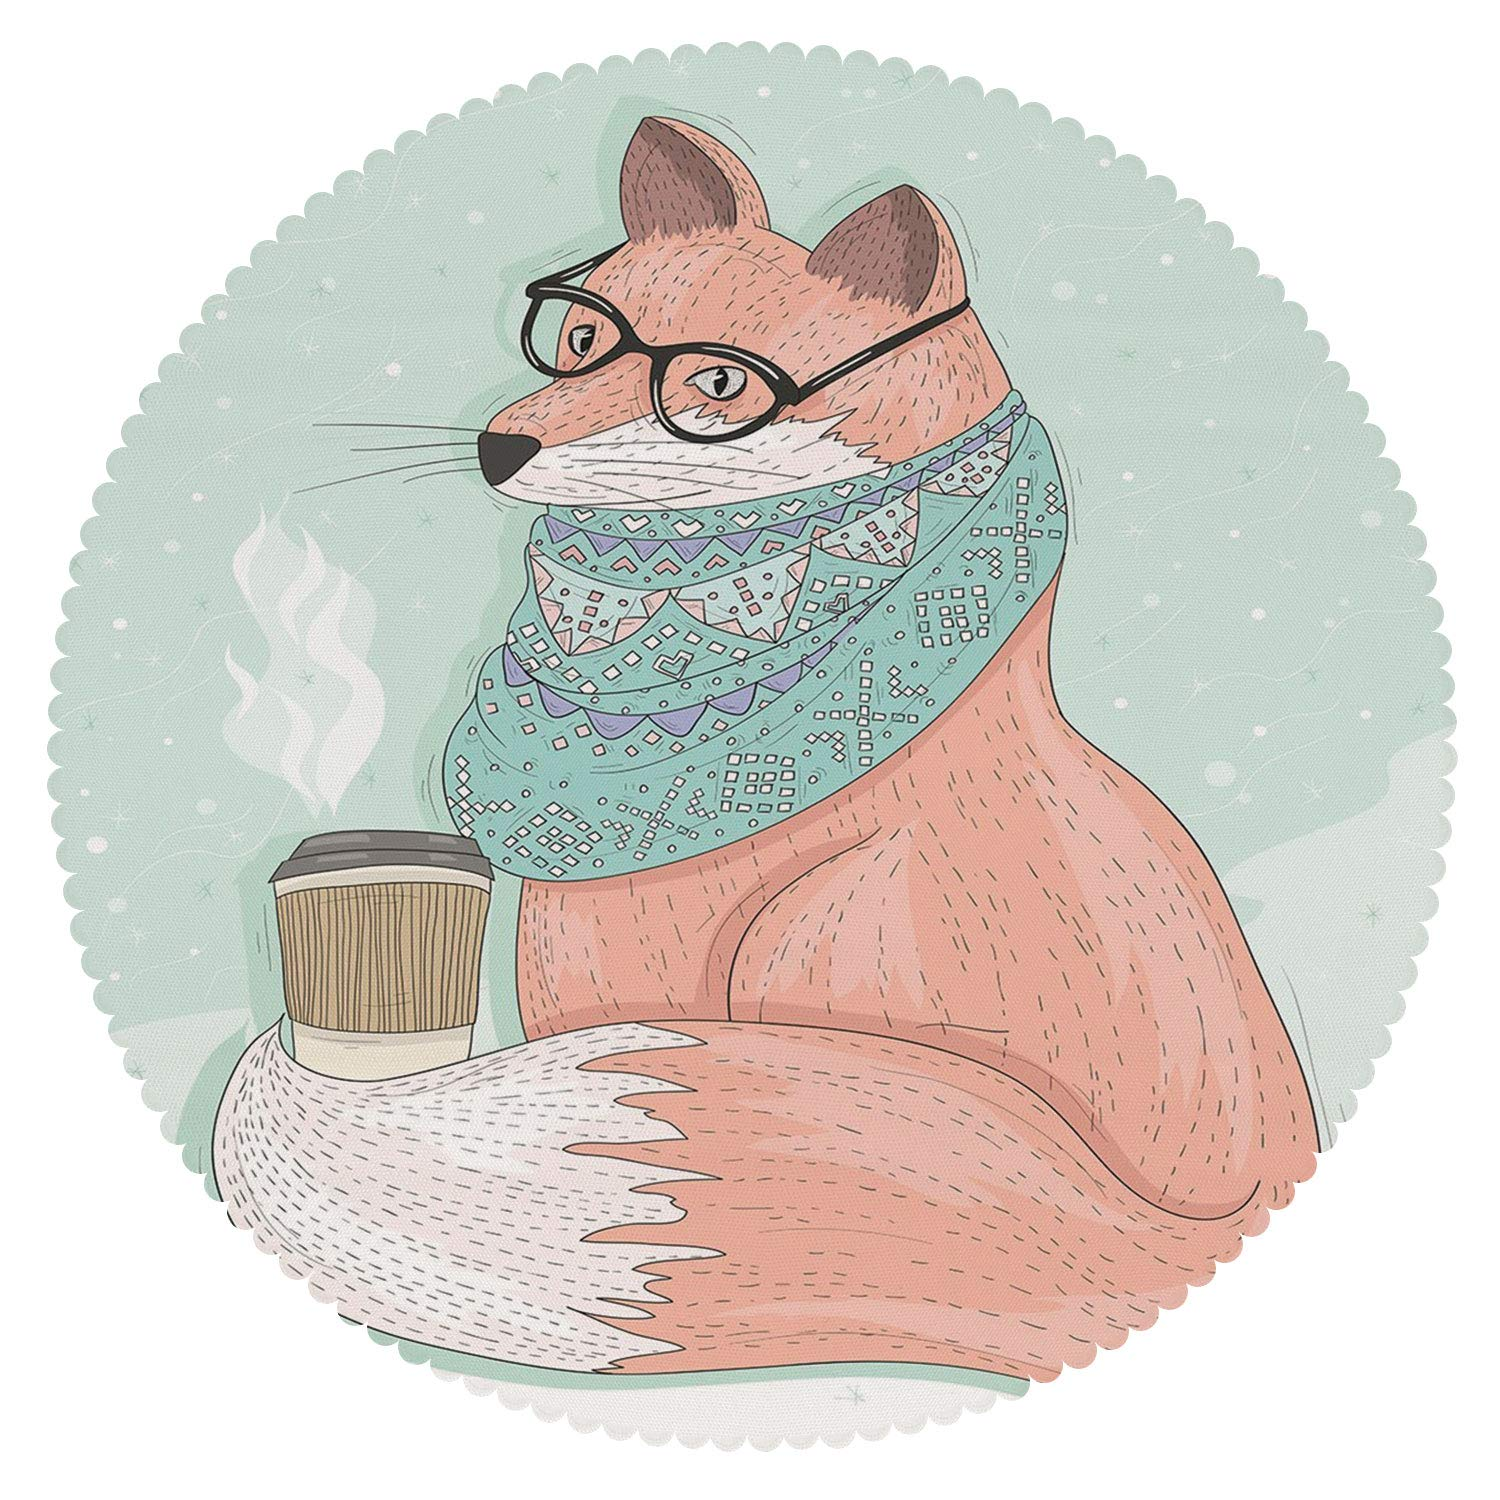 American Round Tablecloth [ Animal Decor,Cute Hipster Fox with Glasses and Scarf Drinking Coffee Hippie Illustration,Coral Mint ] Fabric Tablecloths